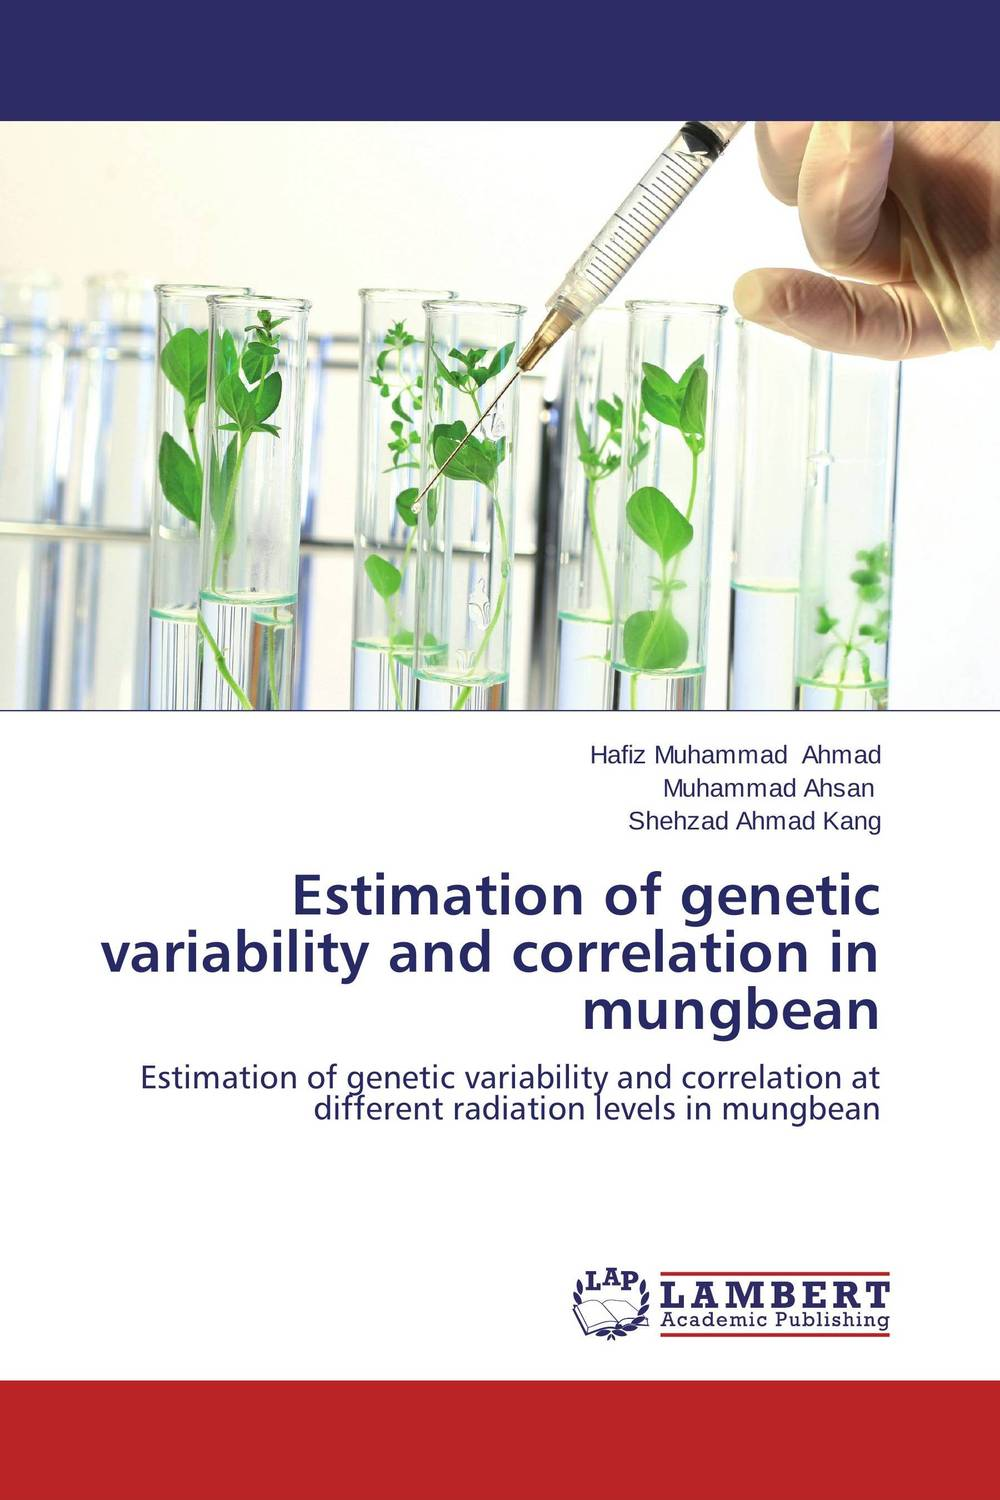 Estimation of genetic variability and correlation in mungbean rakesh kumar production potential of summer mungbean cultivars in india